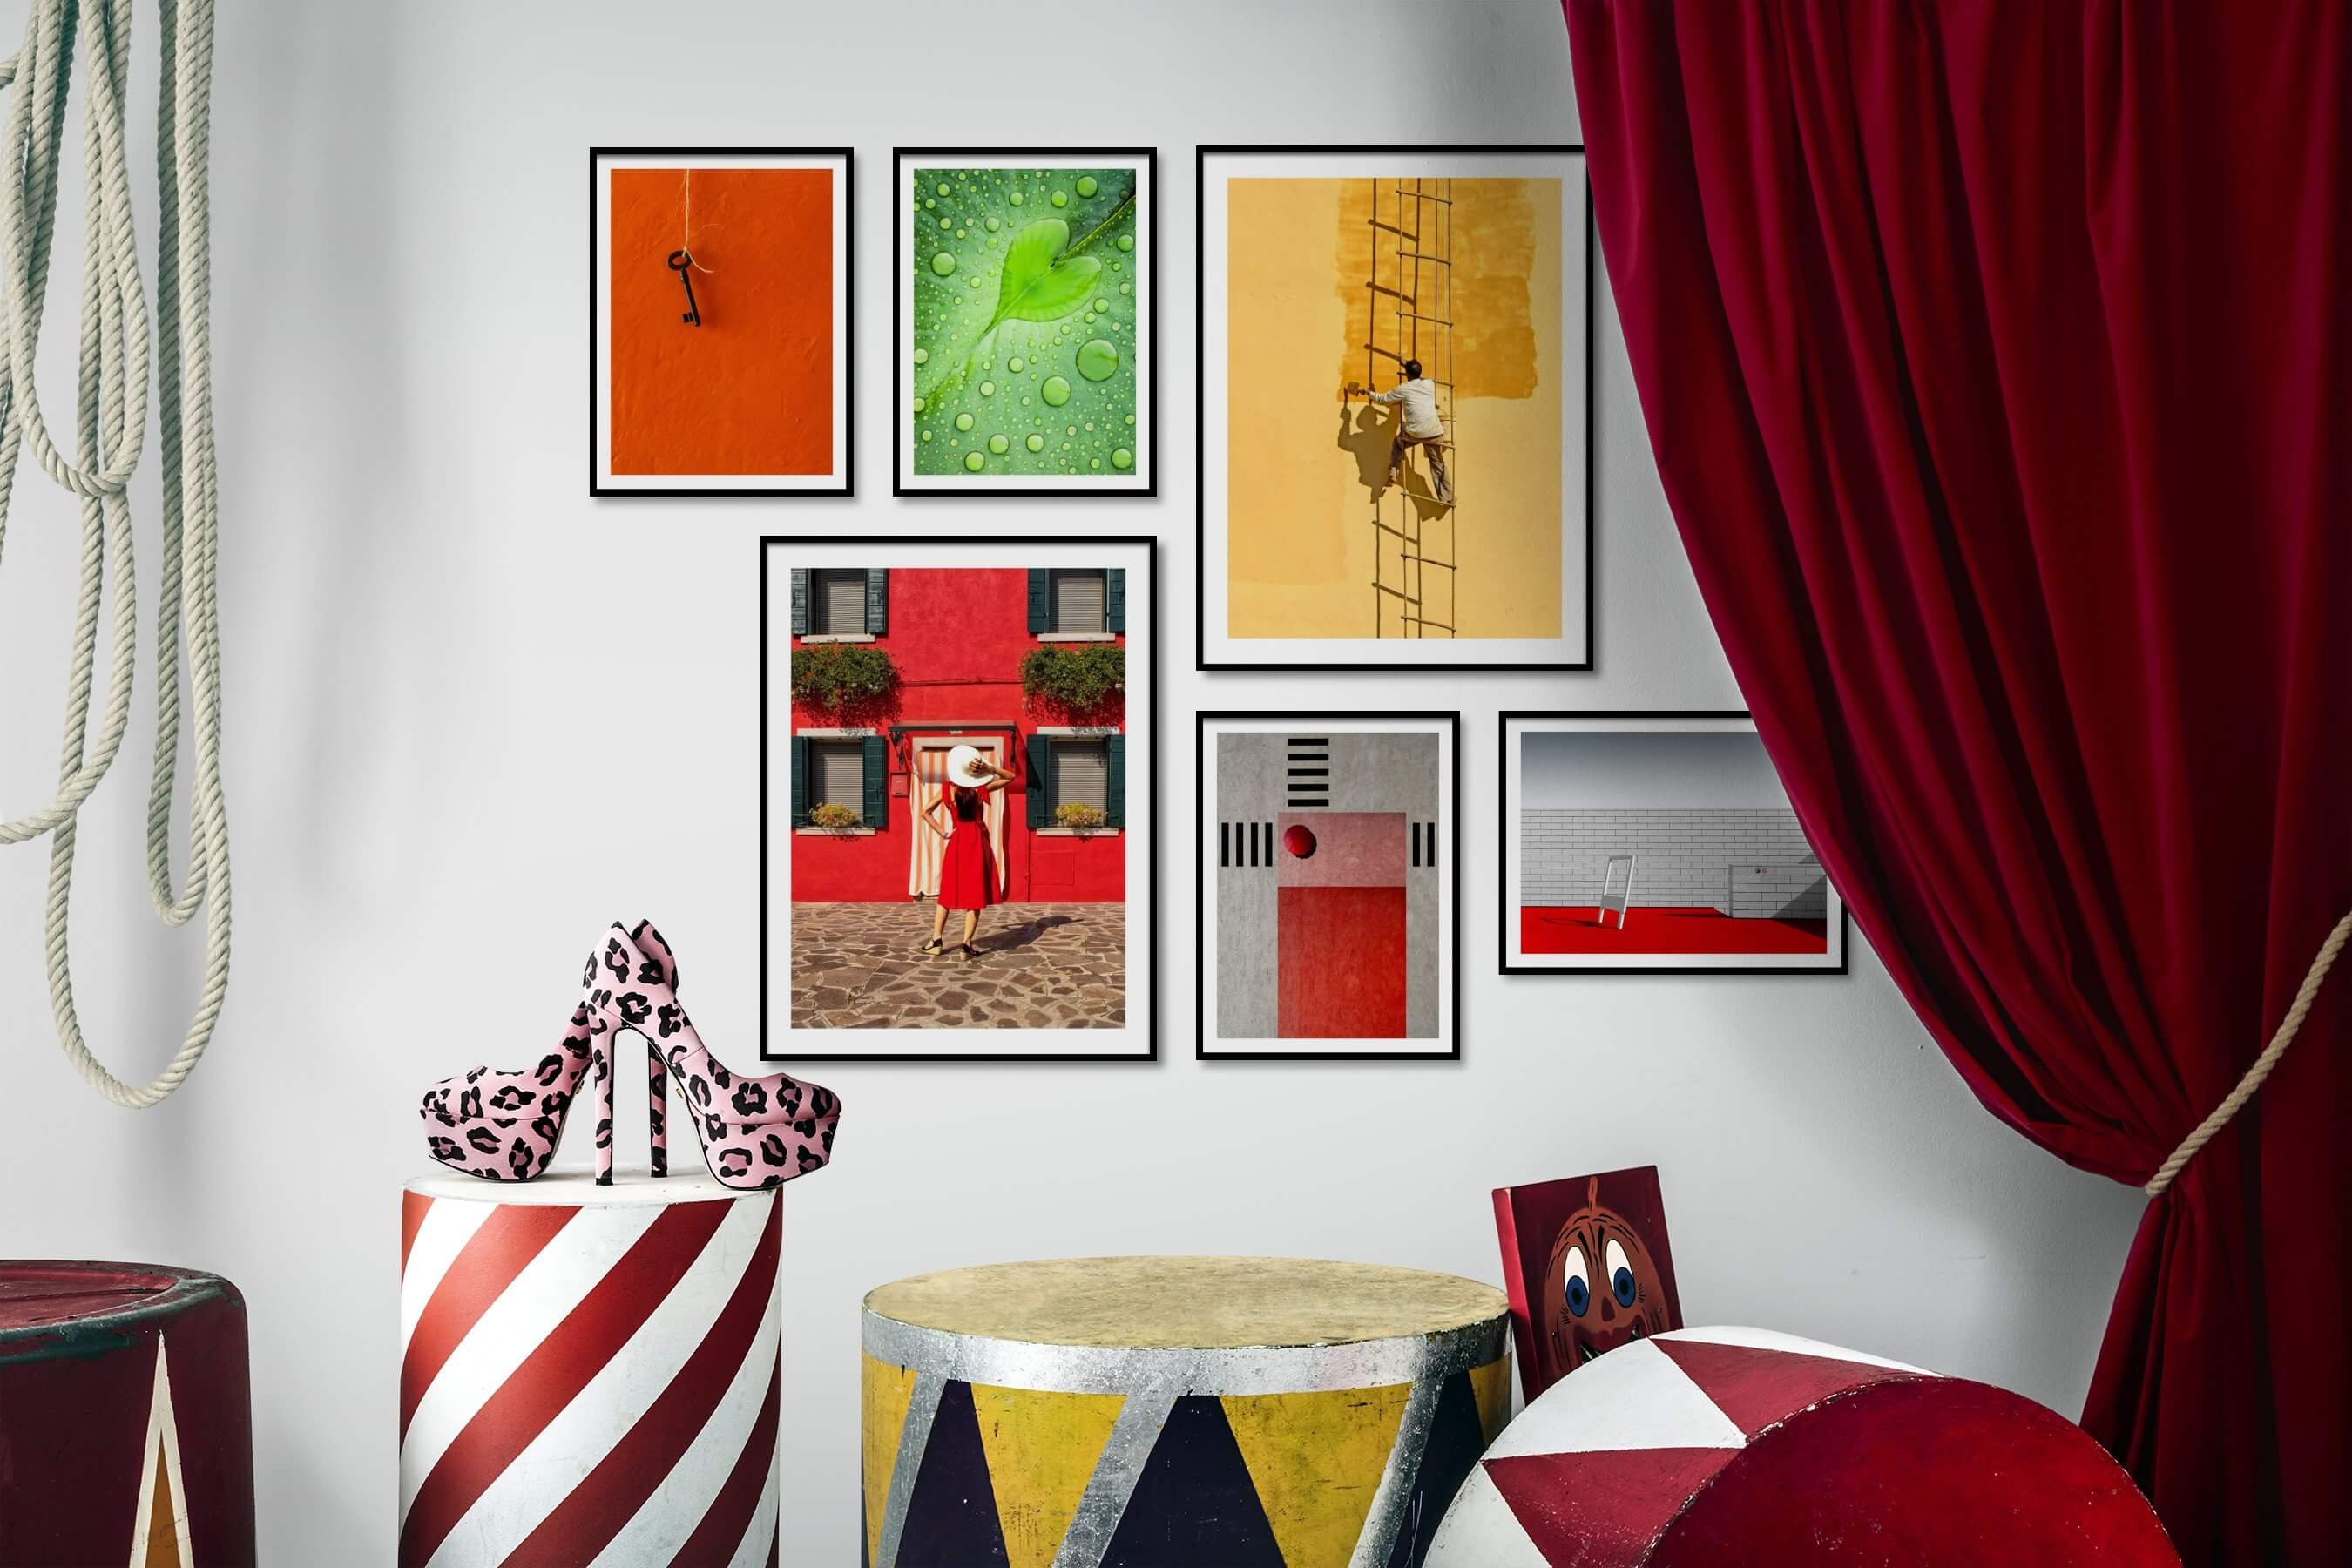 Gallery wall idea with six framed pictures arranged on a wall depicting For the Minimalist, For the Moderate, Flowers & Plants, Fashion & Beauty, and City Life